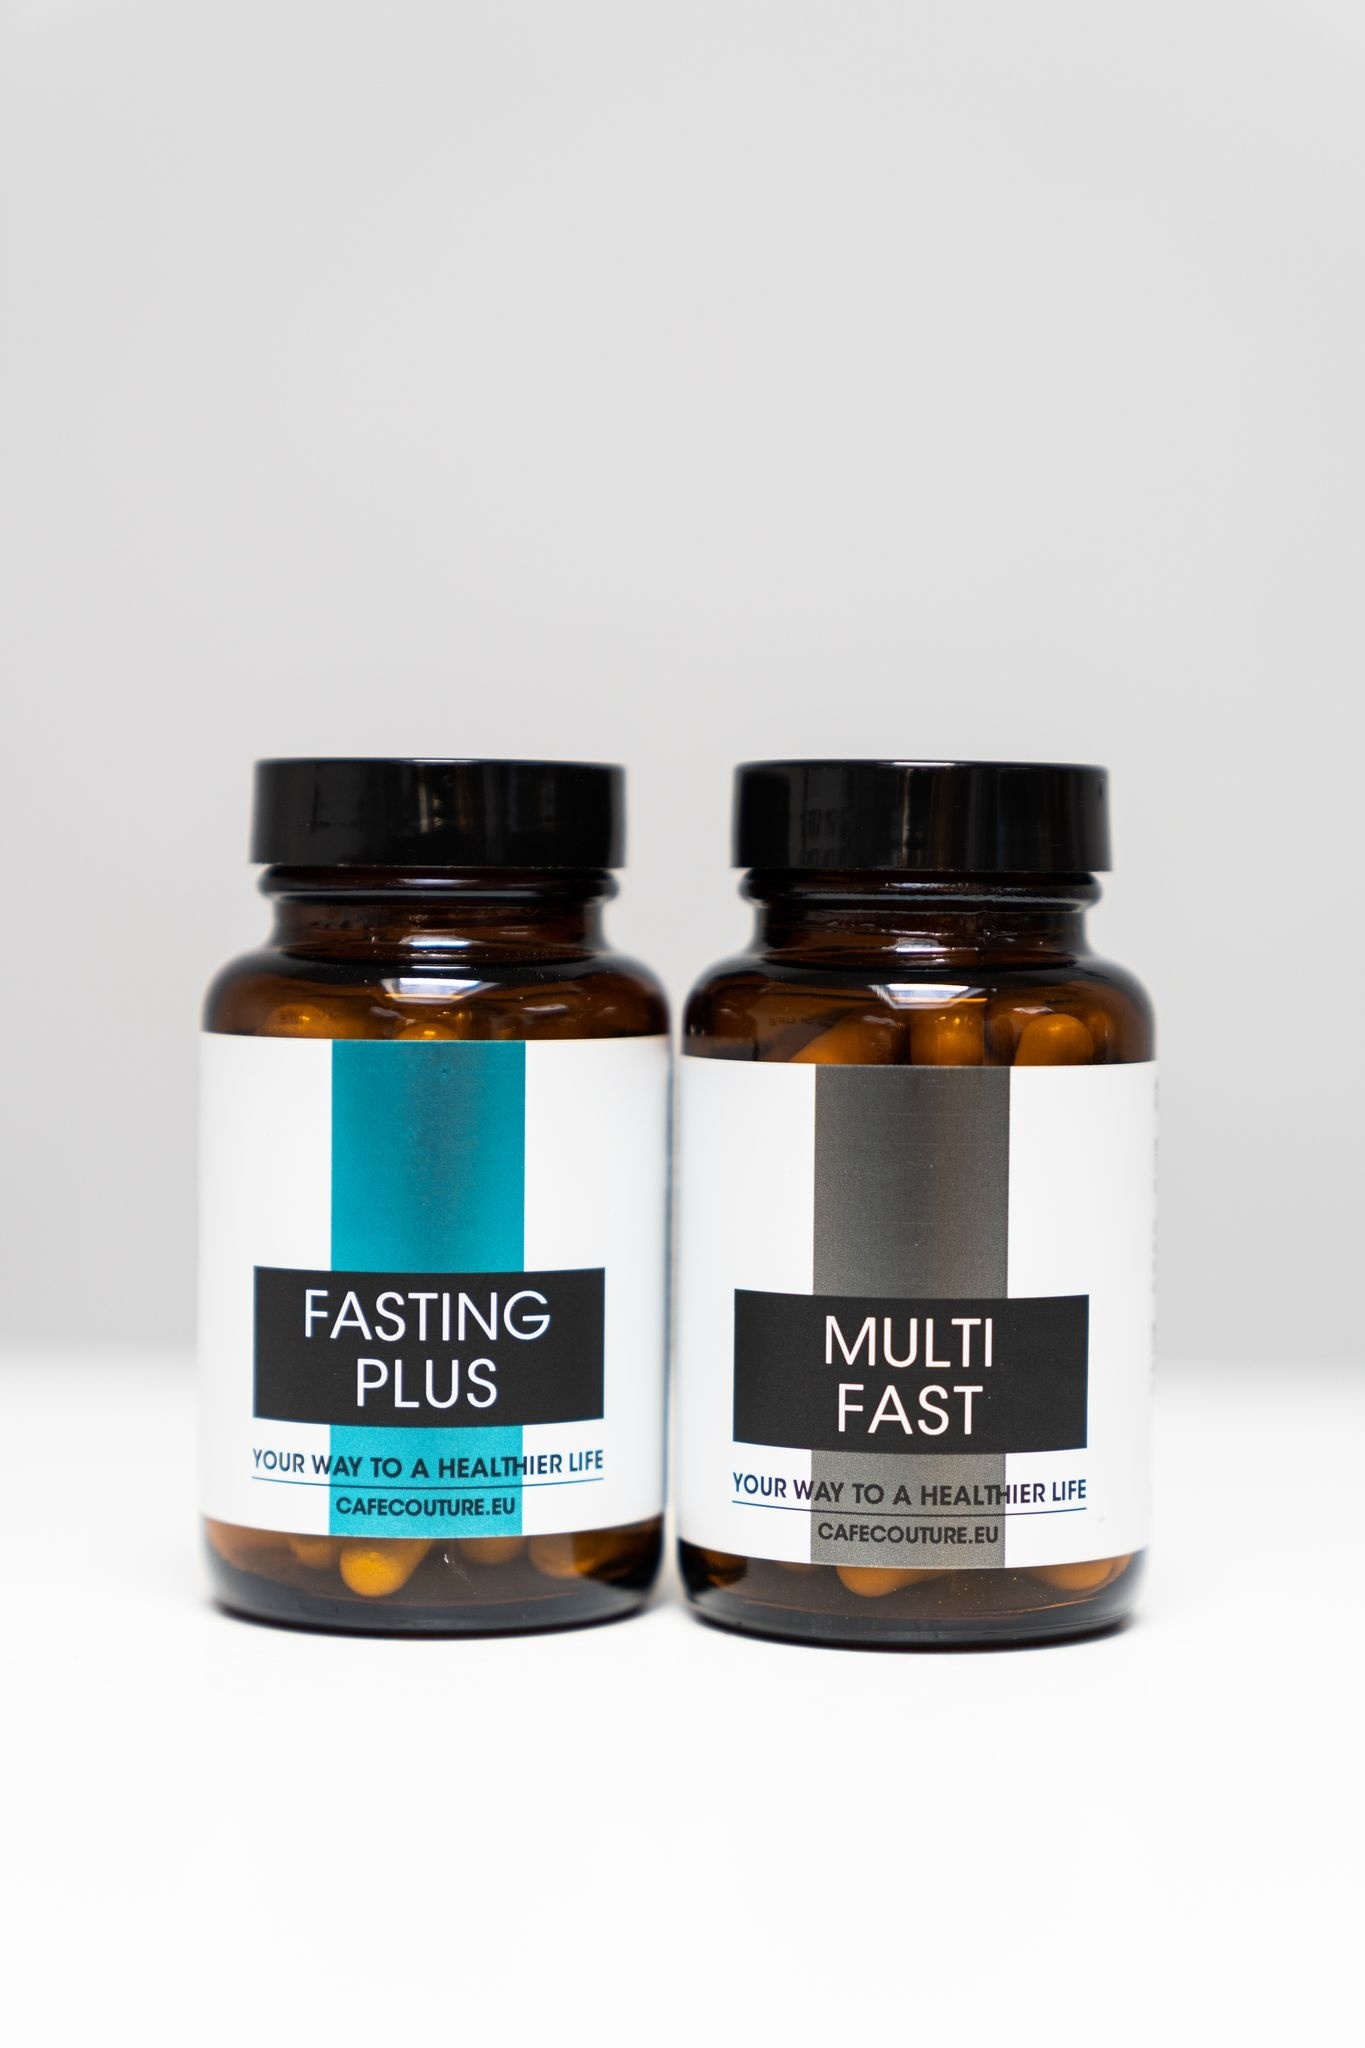 Multi Fast Male & Fasting Plus gift box